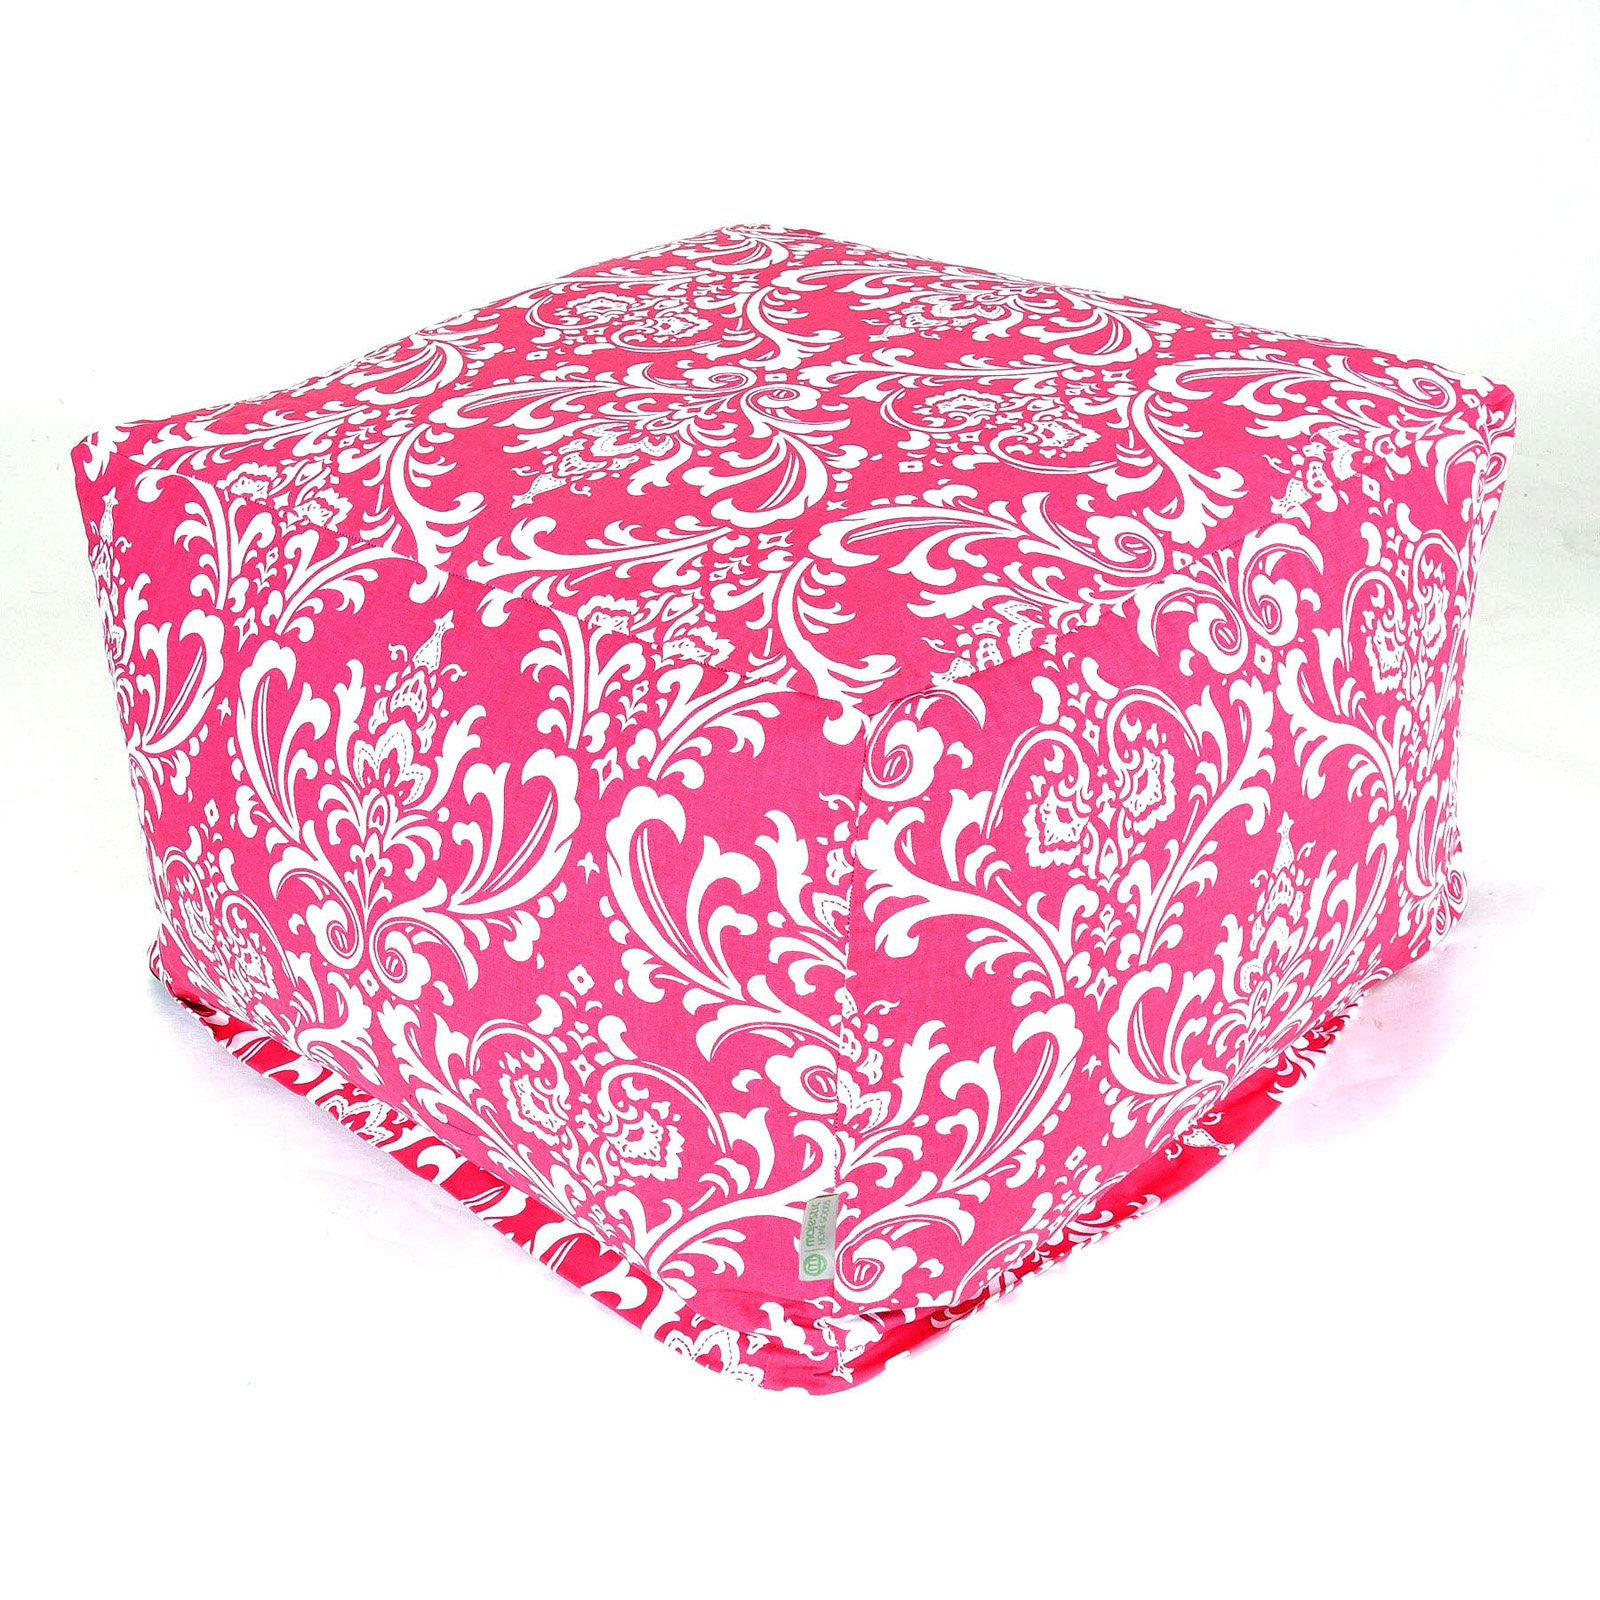 Majestic Home Goods Hot Pink French Quarter Bean Bag Ottoman